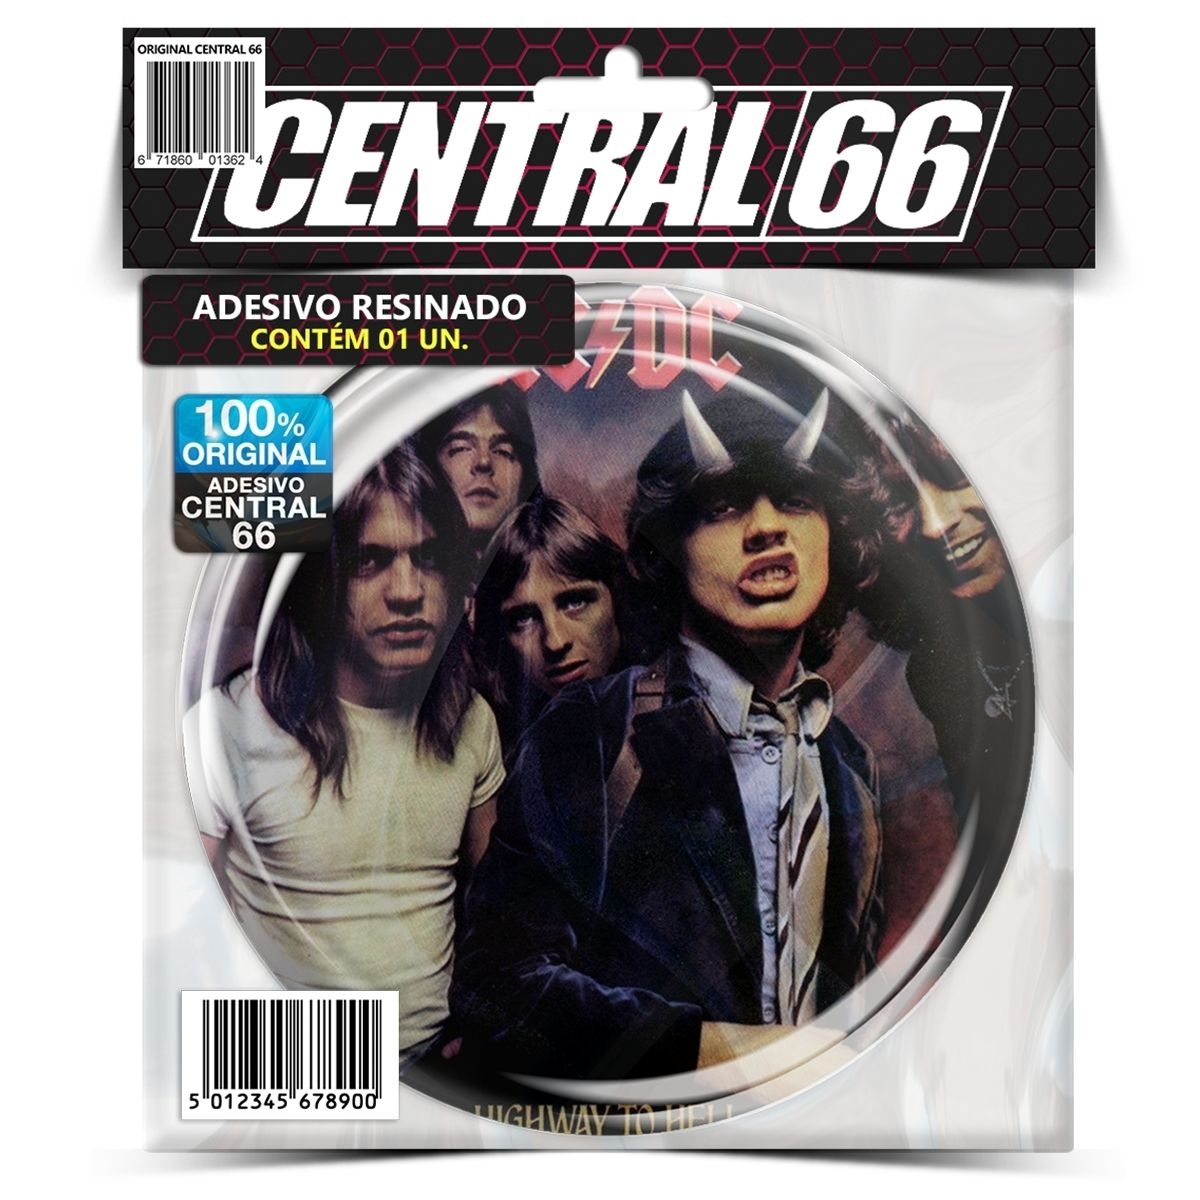 Adesivo Redondo Ac Dc Highway to Hell – Central 66